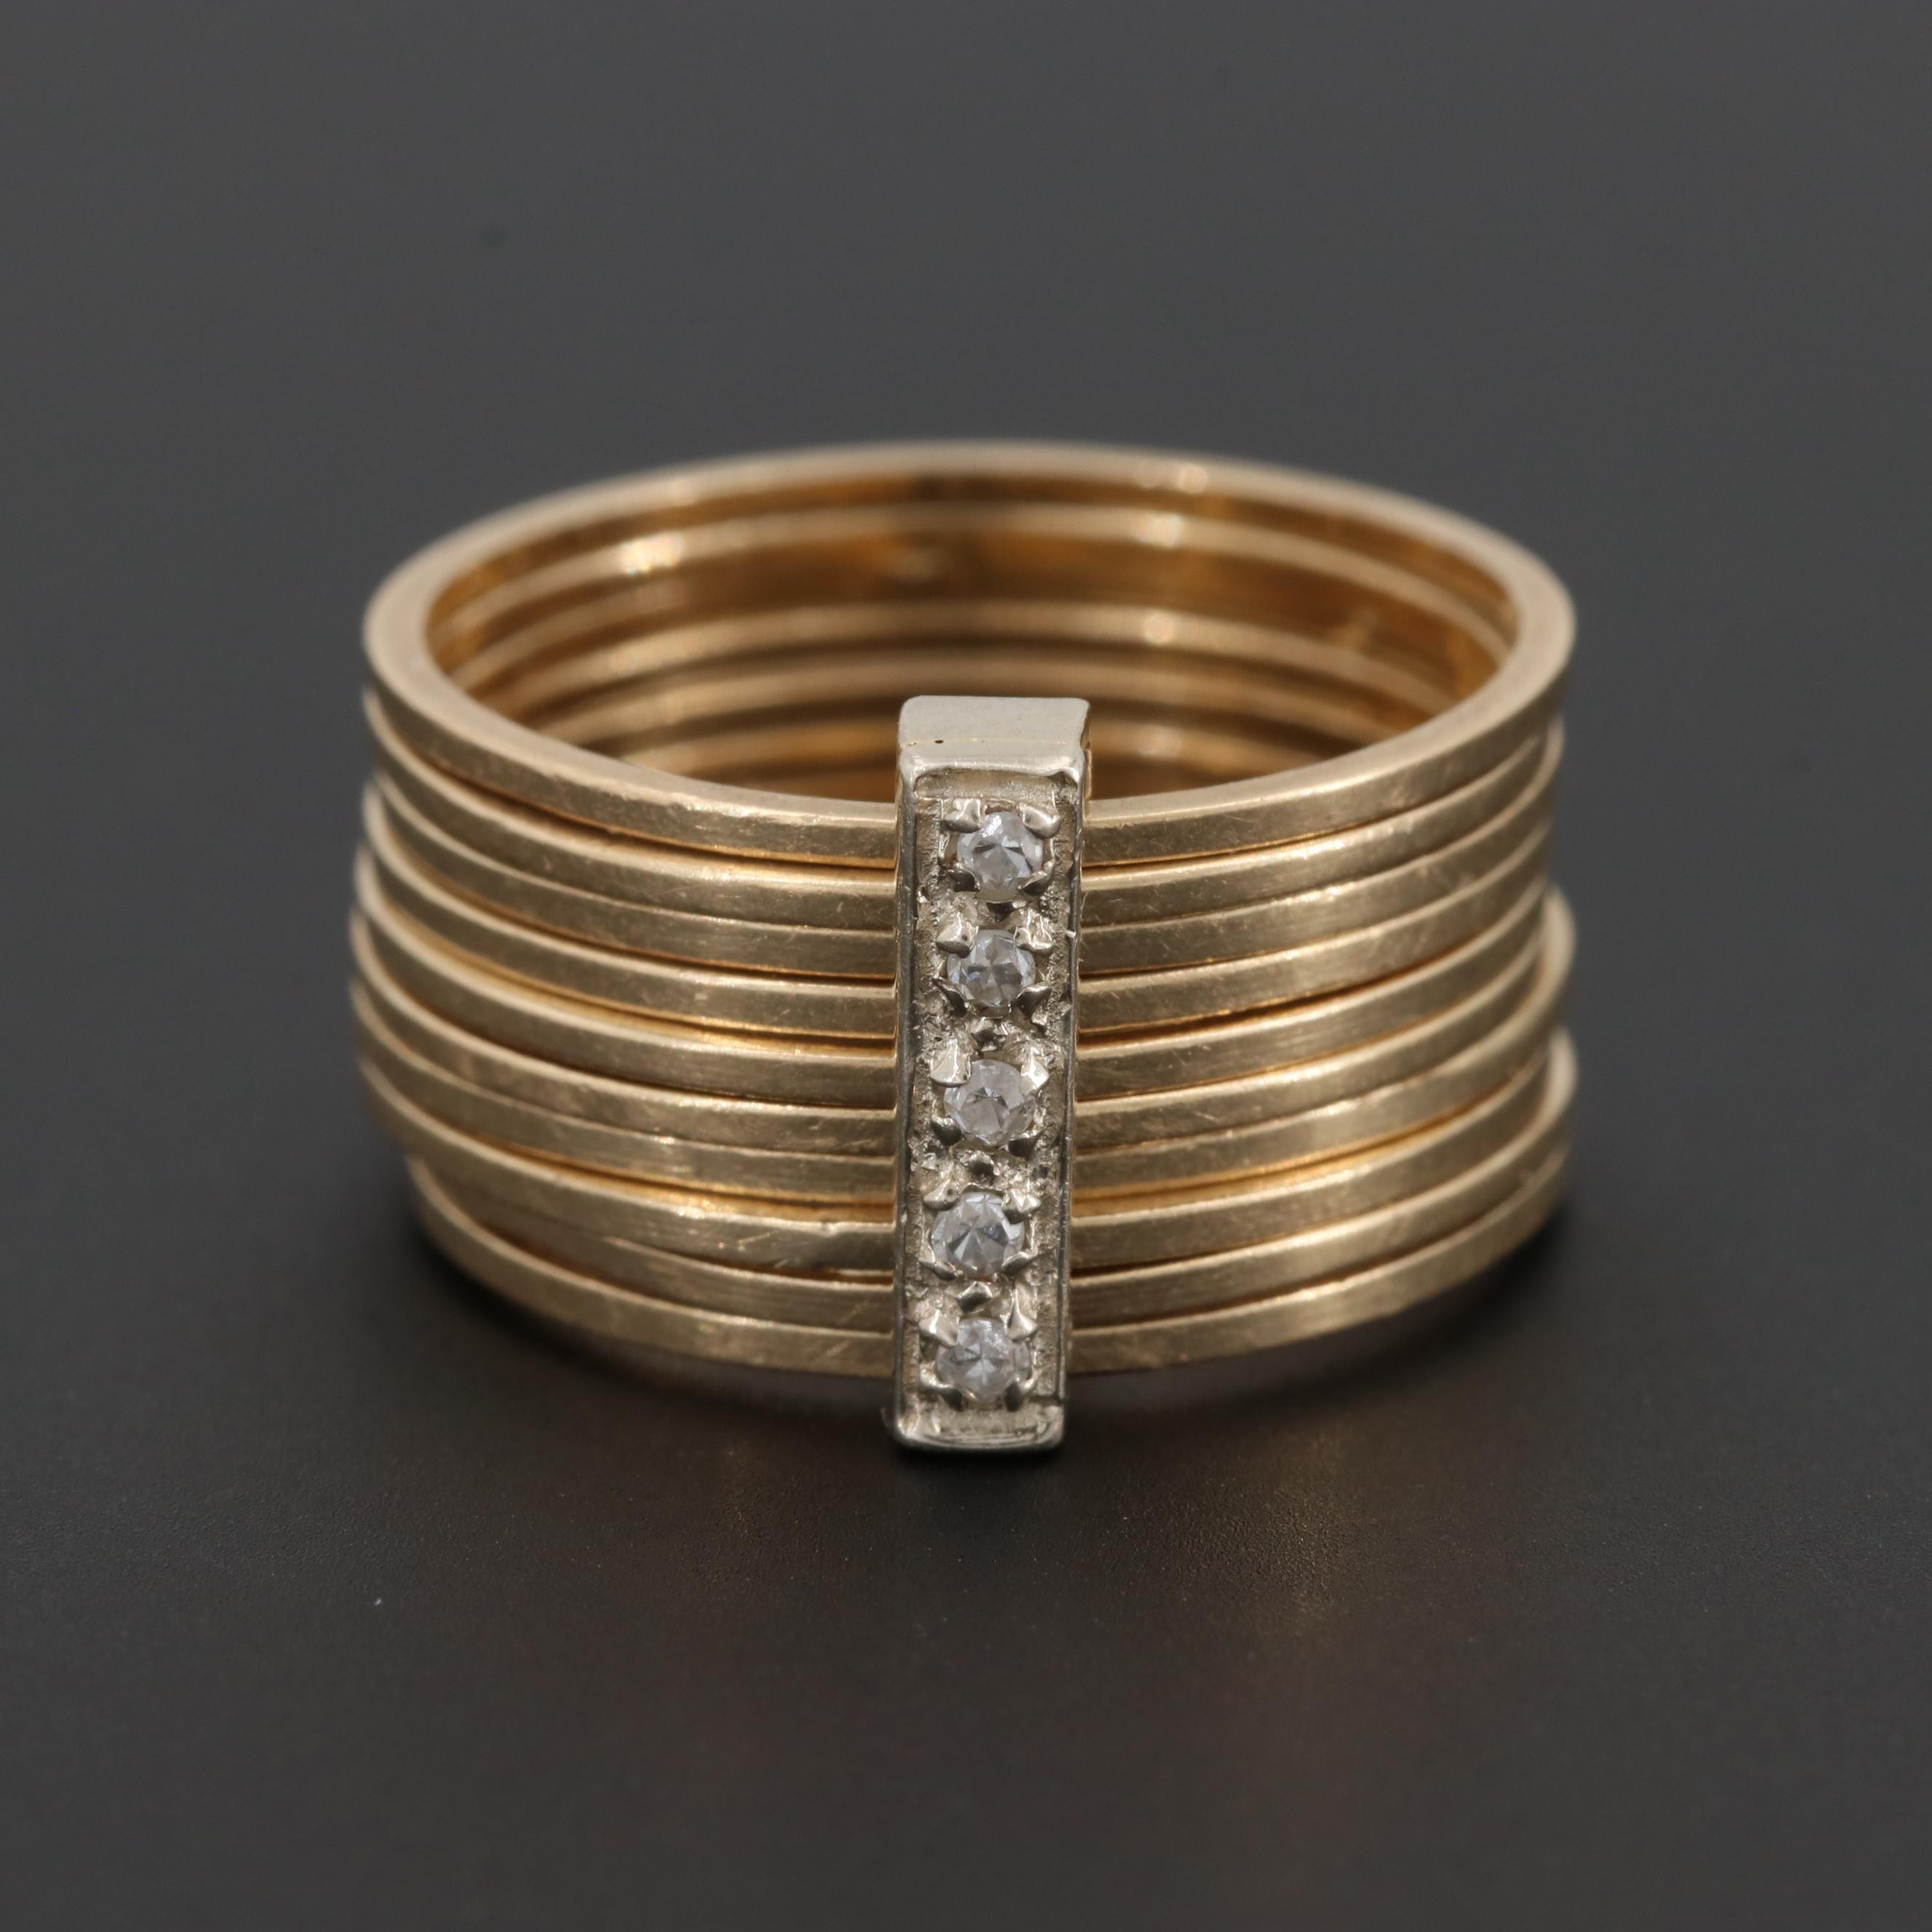 14K Yellow Gold Diamond Harem Ring with White Gold Accent